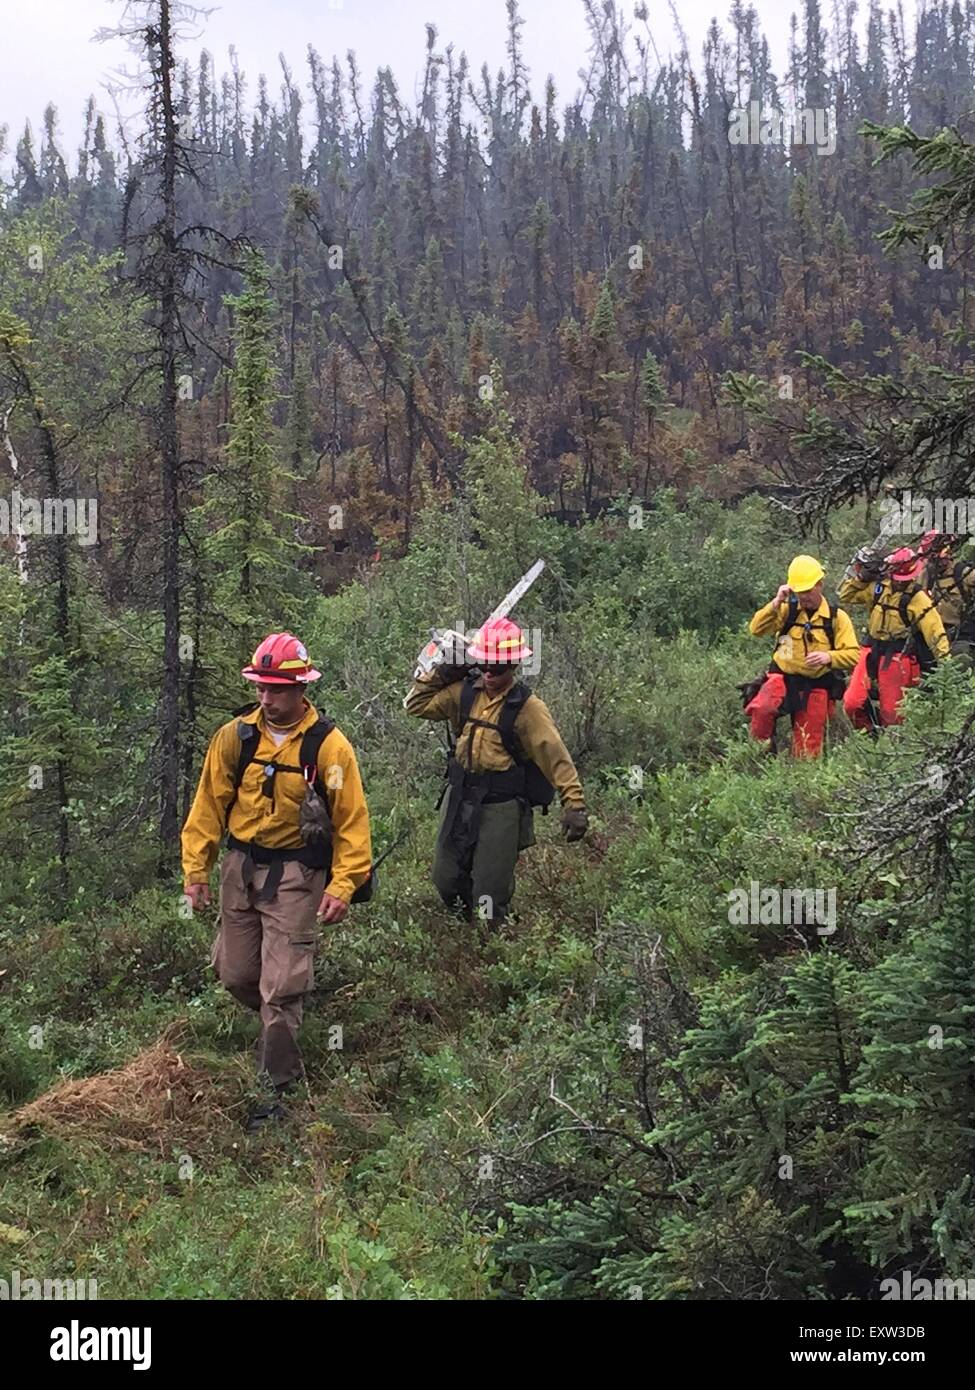 New Recruits With The Bureau Of Land Management Backcountry Stock Photo Alamy